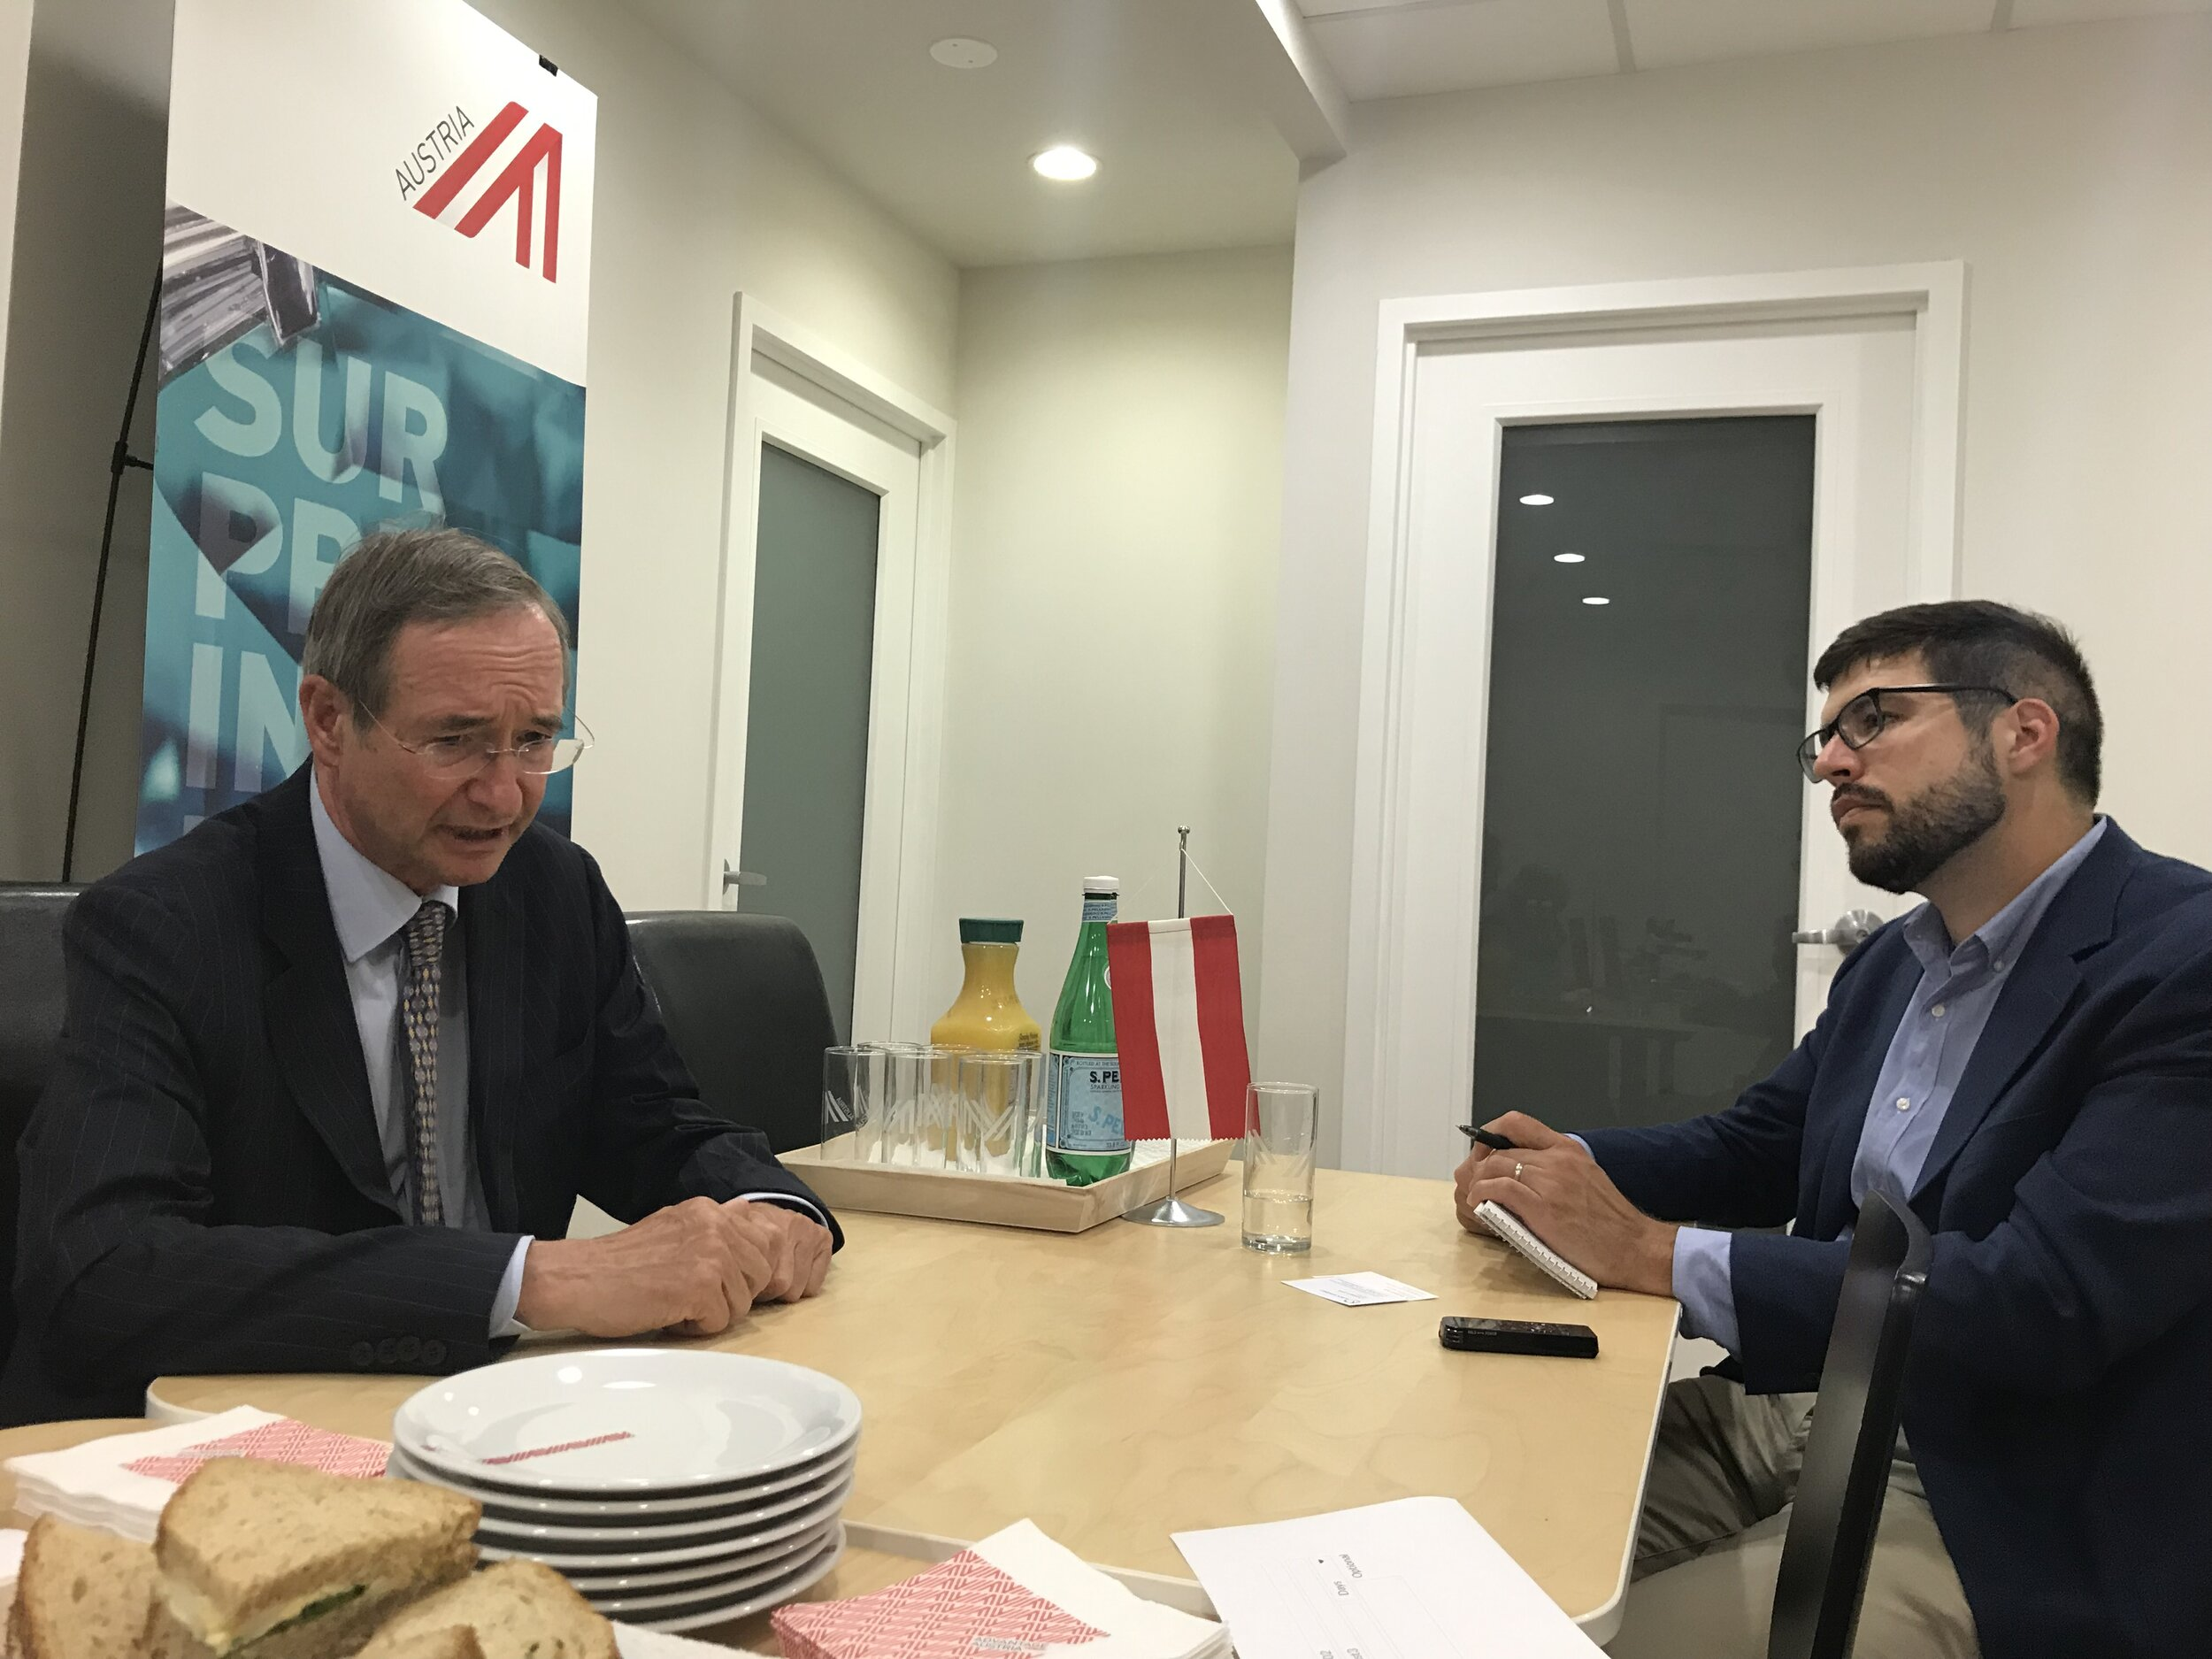 On the first leg of his U.S. visit, EUROCHAMBRES President Leitl held bilaterls in Washington, DC. There he talked with POLITICO trade reporter Adam Behsudi about the importance of transatlantic relations to our joint economic fabric